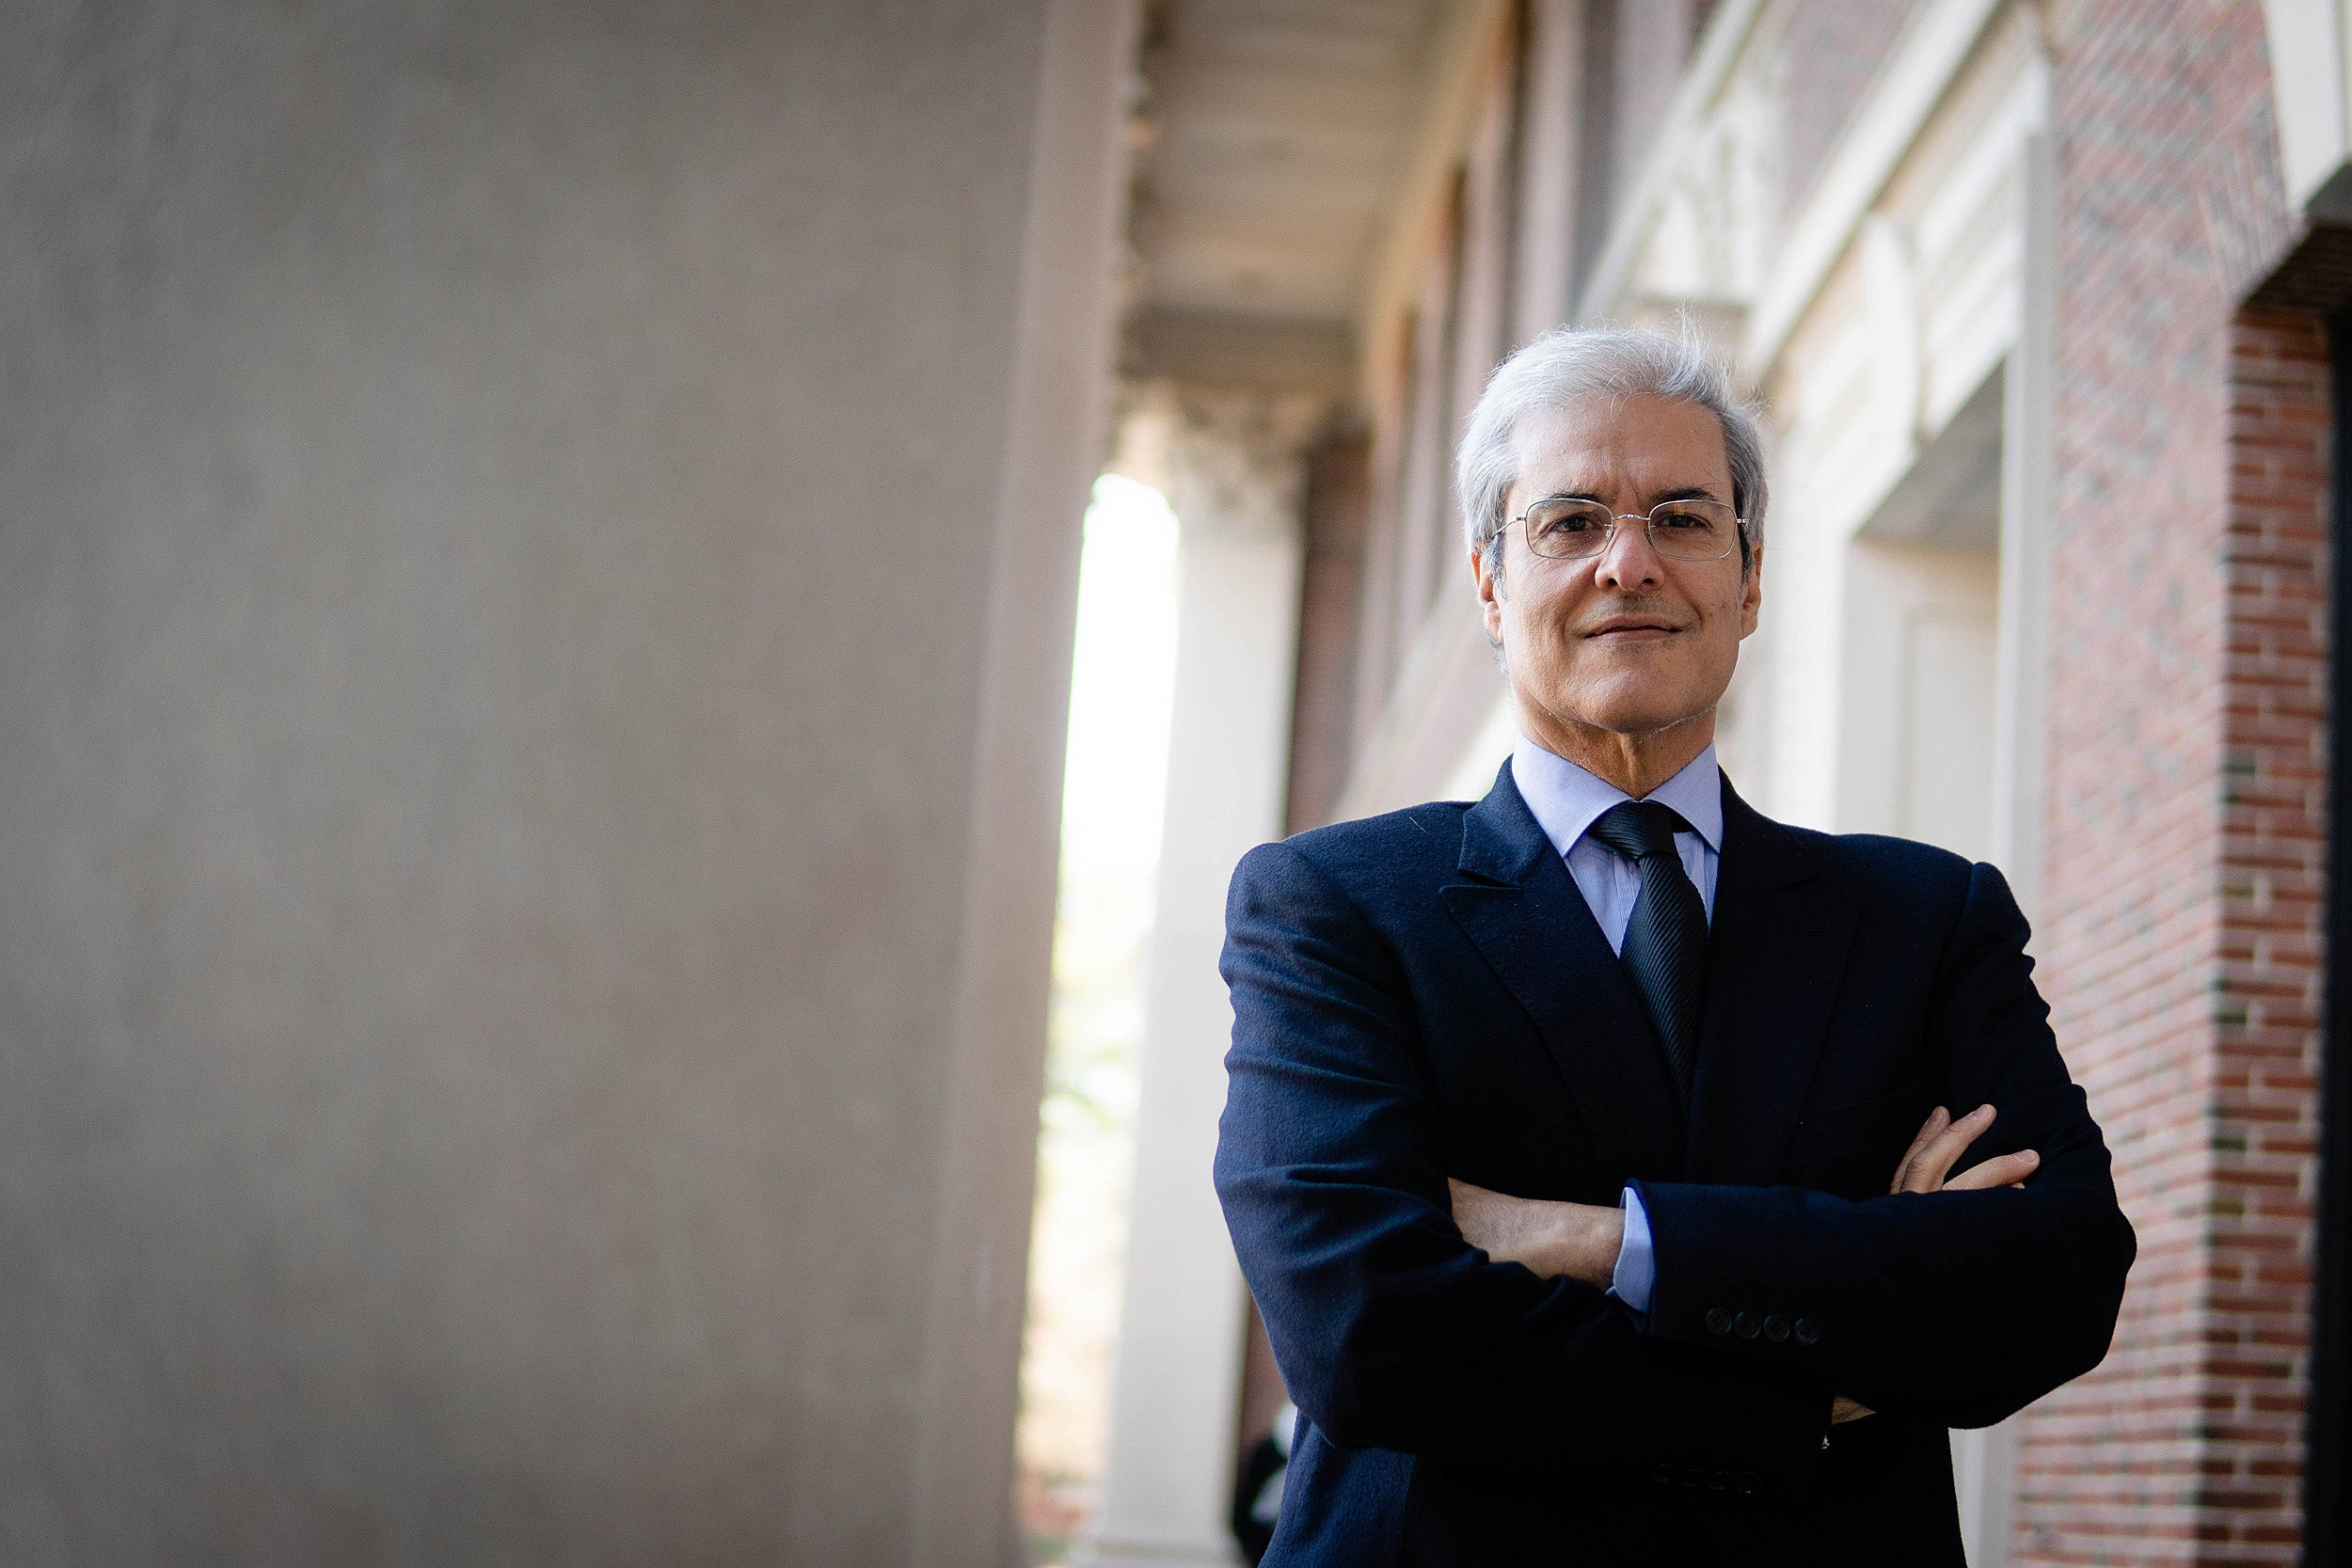 Morocco's Prince Moulay Hicham el Alaoui relinquished his title to press for democratic principles. An associate of Harvard's Weatherhead Center for International Affairs, Alaoui is an activist for democratic reform in the Arab world.